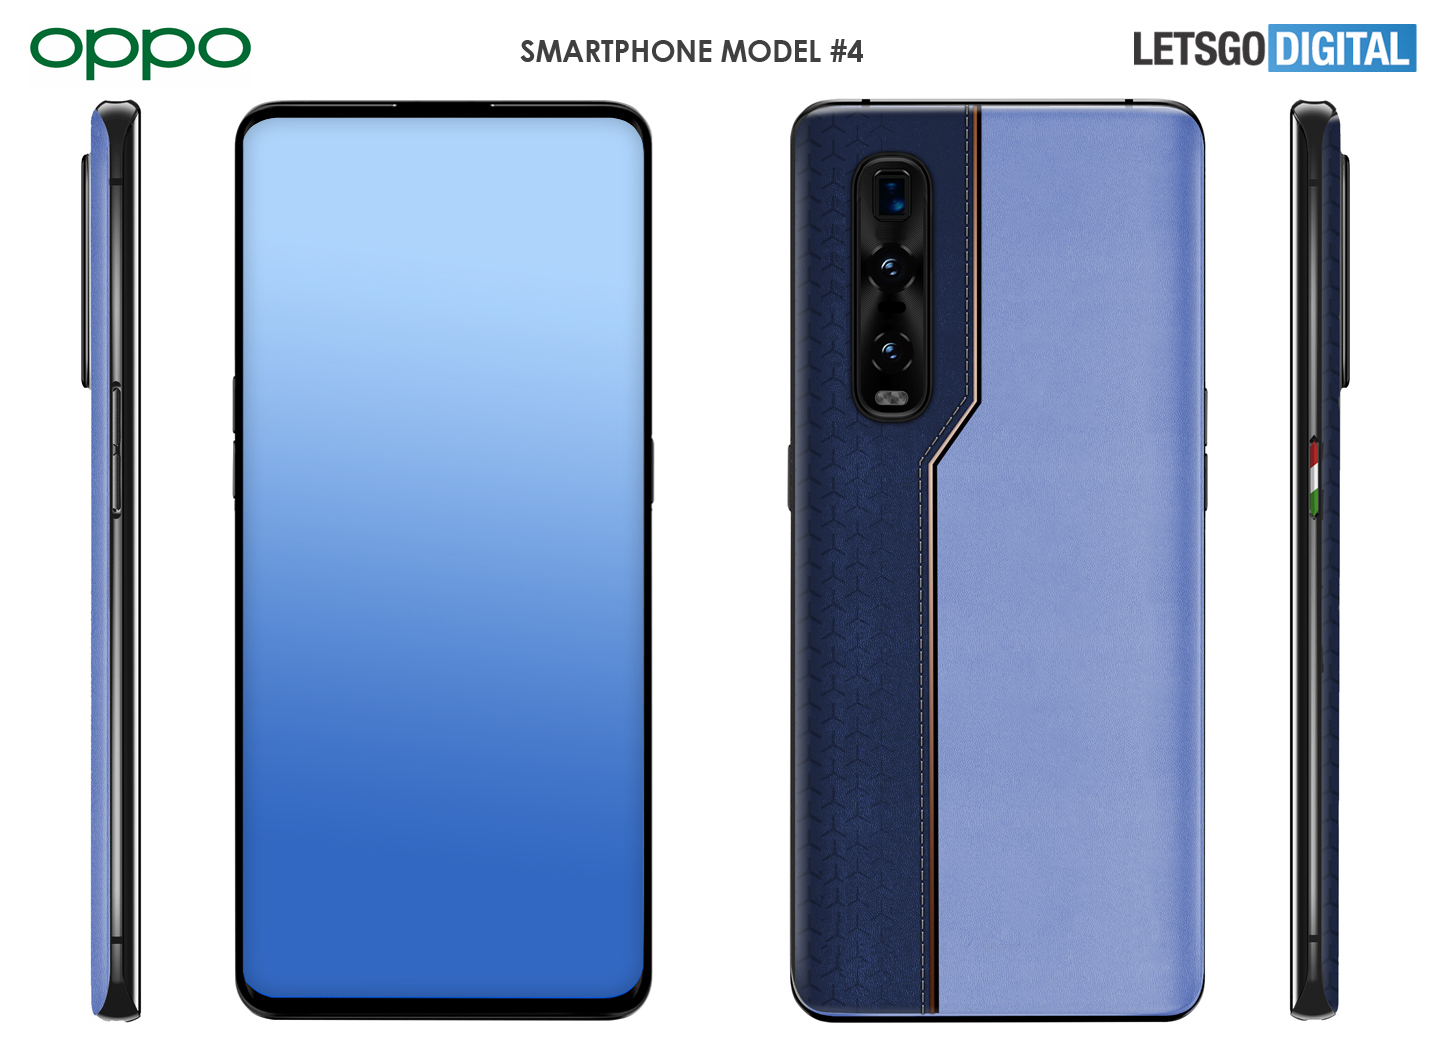 Oppo Limited Edition smartphone